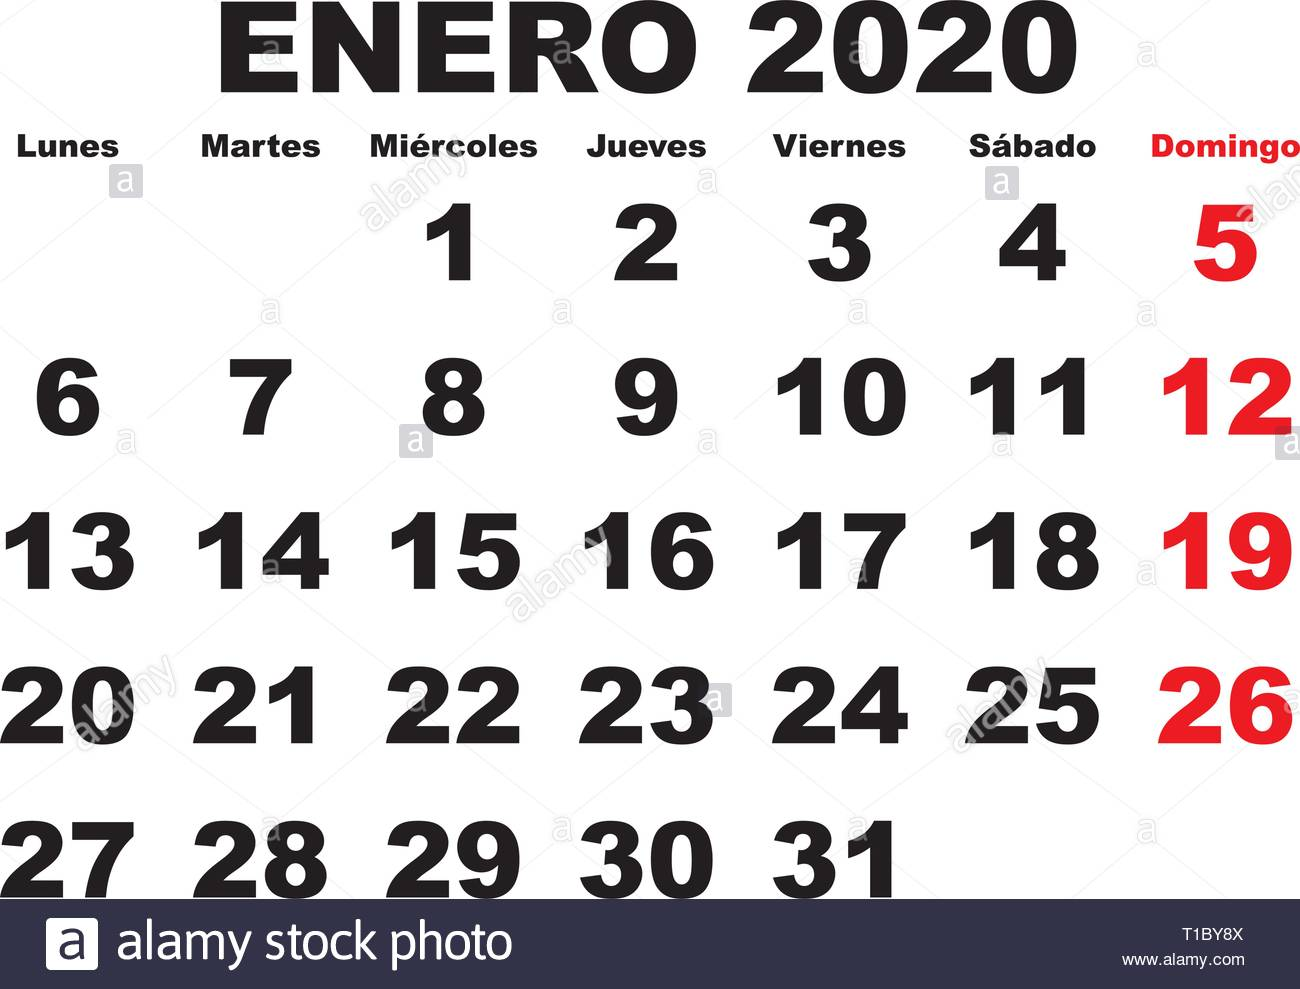 Calendario 2020 Da Parete.Calendario 2020 Immagini Calendario 2020 Fotos Stock Alamy